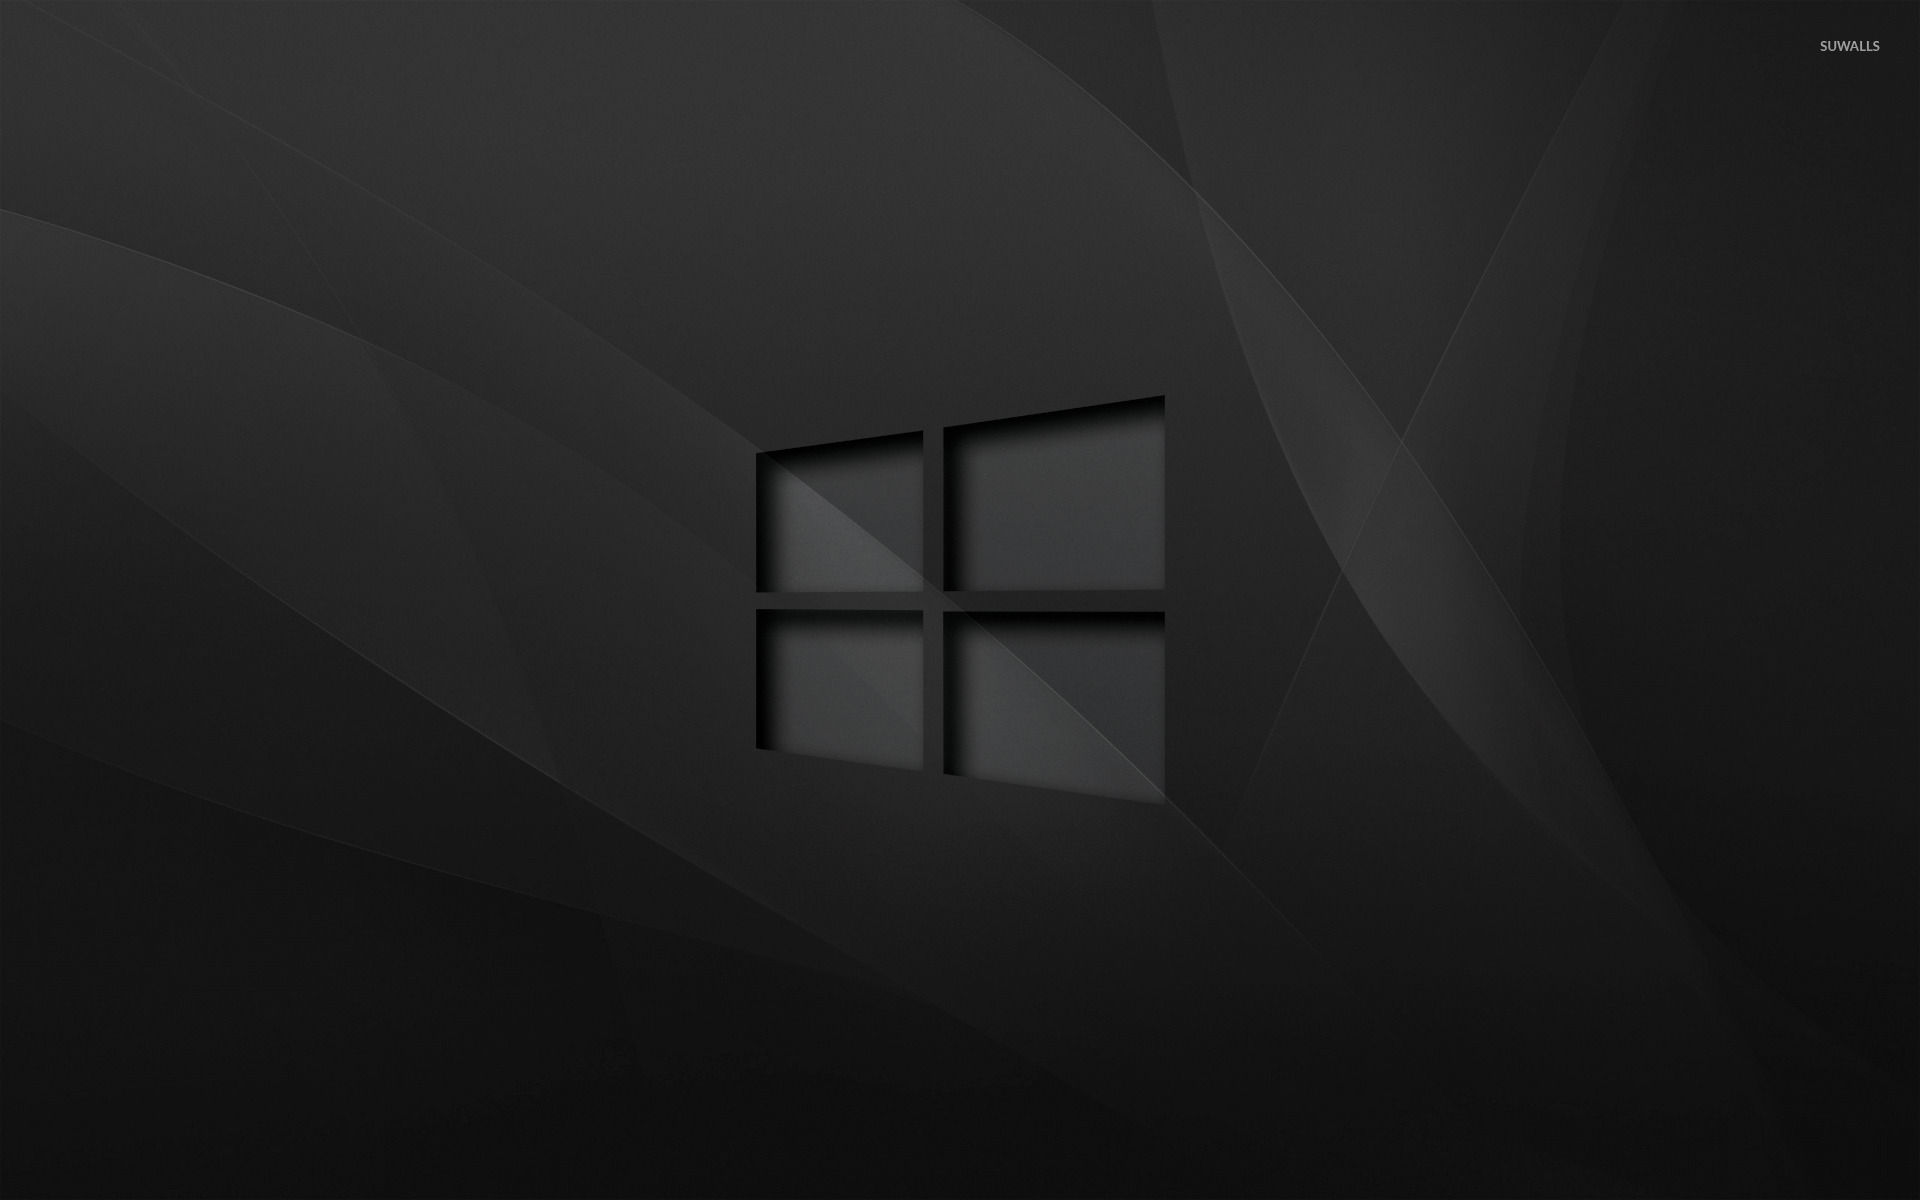 Windows 10 Transparent Logo On Black Waves Wallpaper